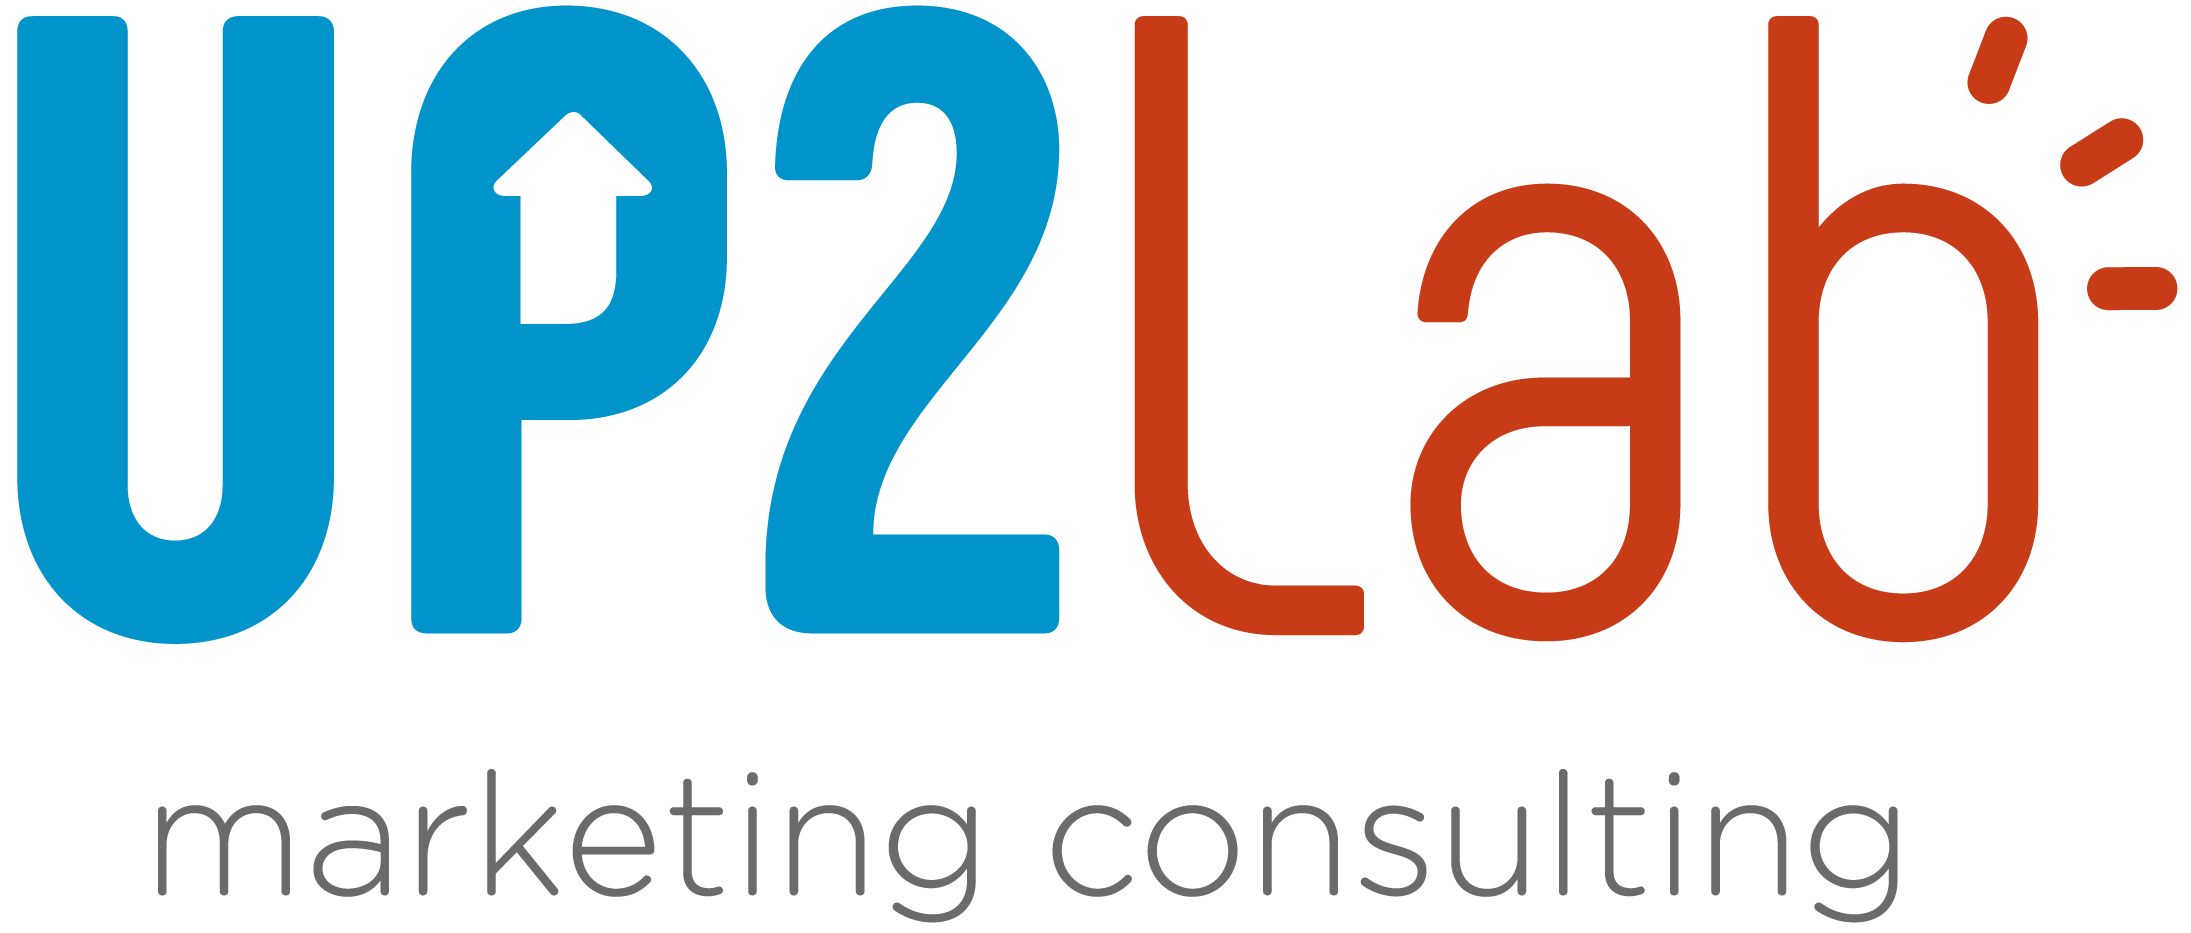 Up2lab - Marketing Consulting